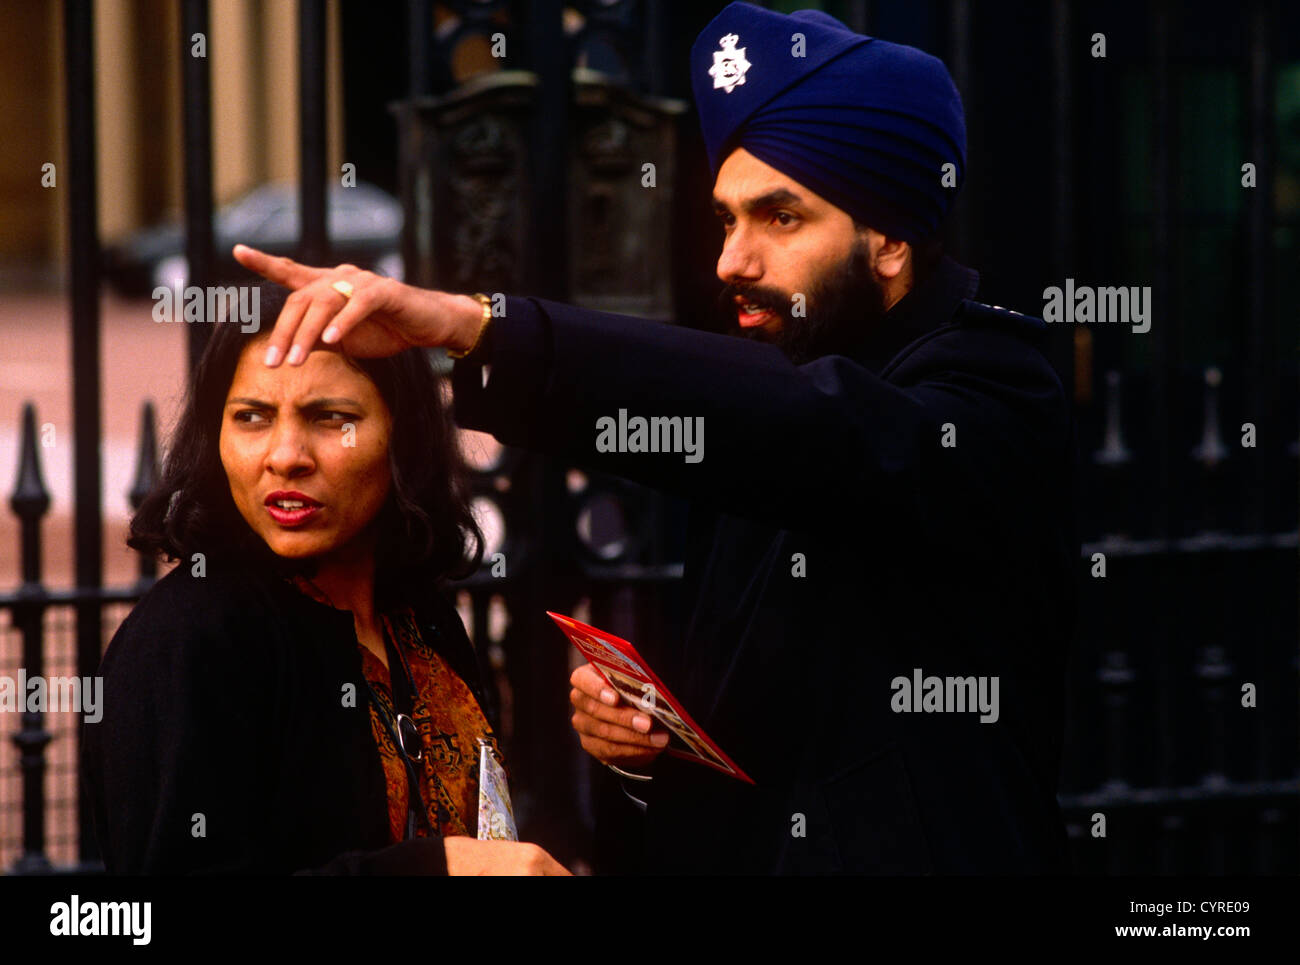 Wearing a turban according to the beliefs of the Sikh faith, a Metropolitan police officer helps an Asian lady citizen - Stock Image